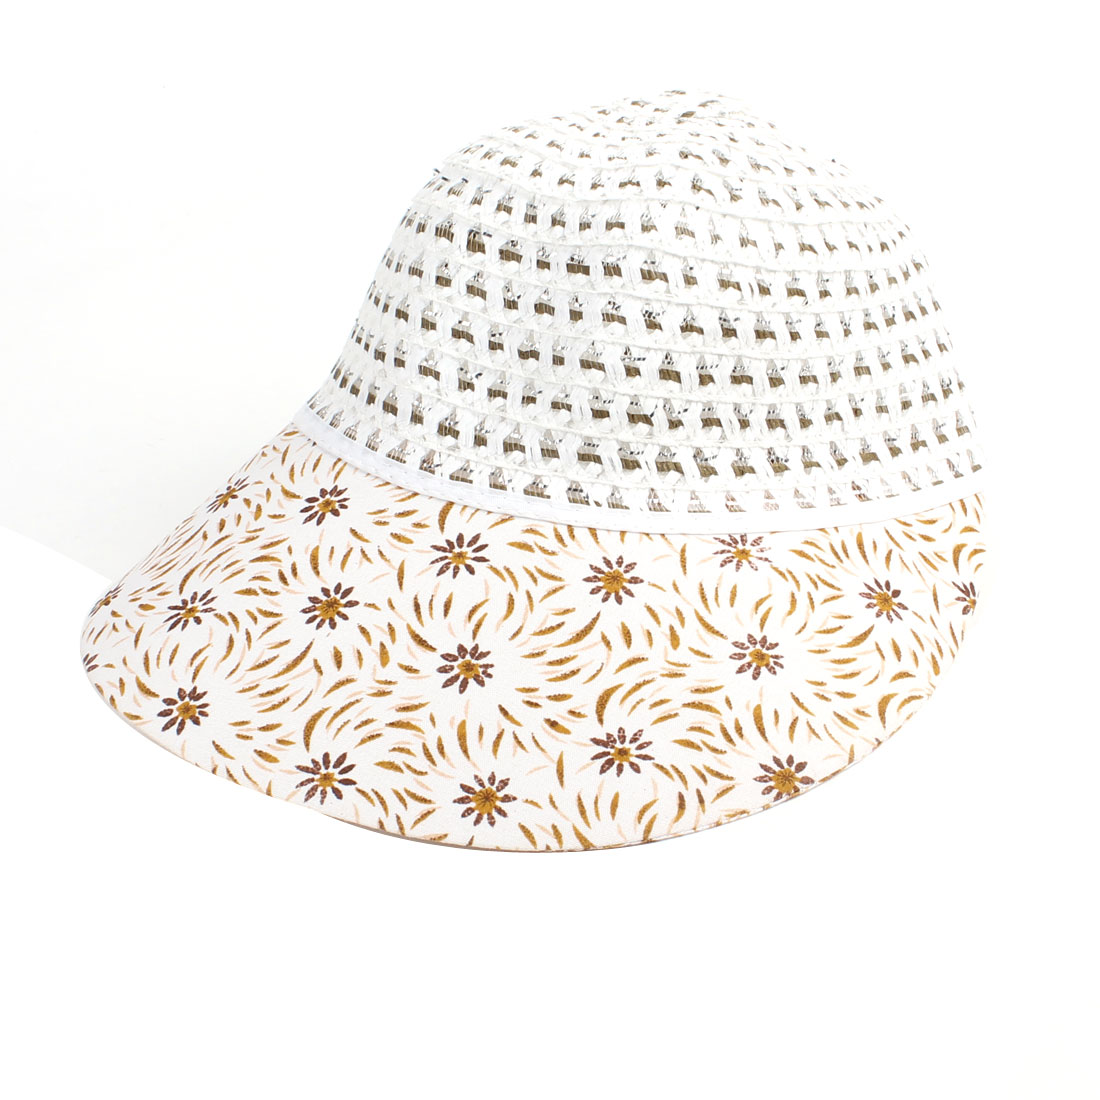 Elastic Band Nylon Plastic Straw Beach Sun Visor Cap Hat Brown White for Woman